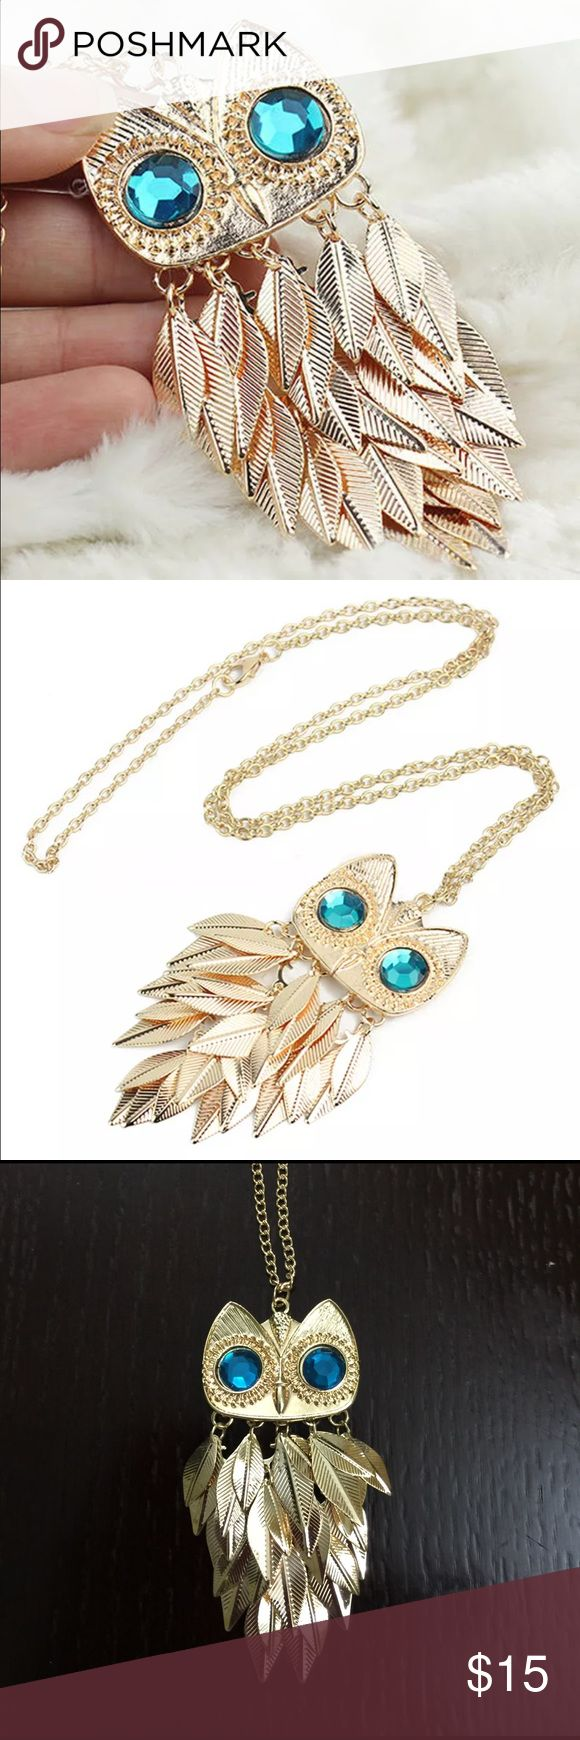 Owl necklace NEW .Women owl  pendant necklace Jewelry Necklaces